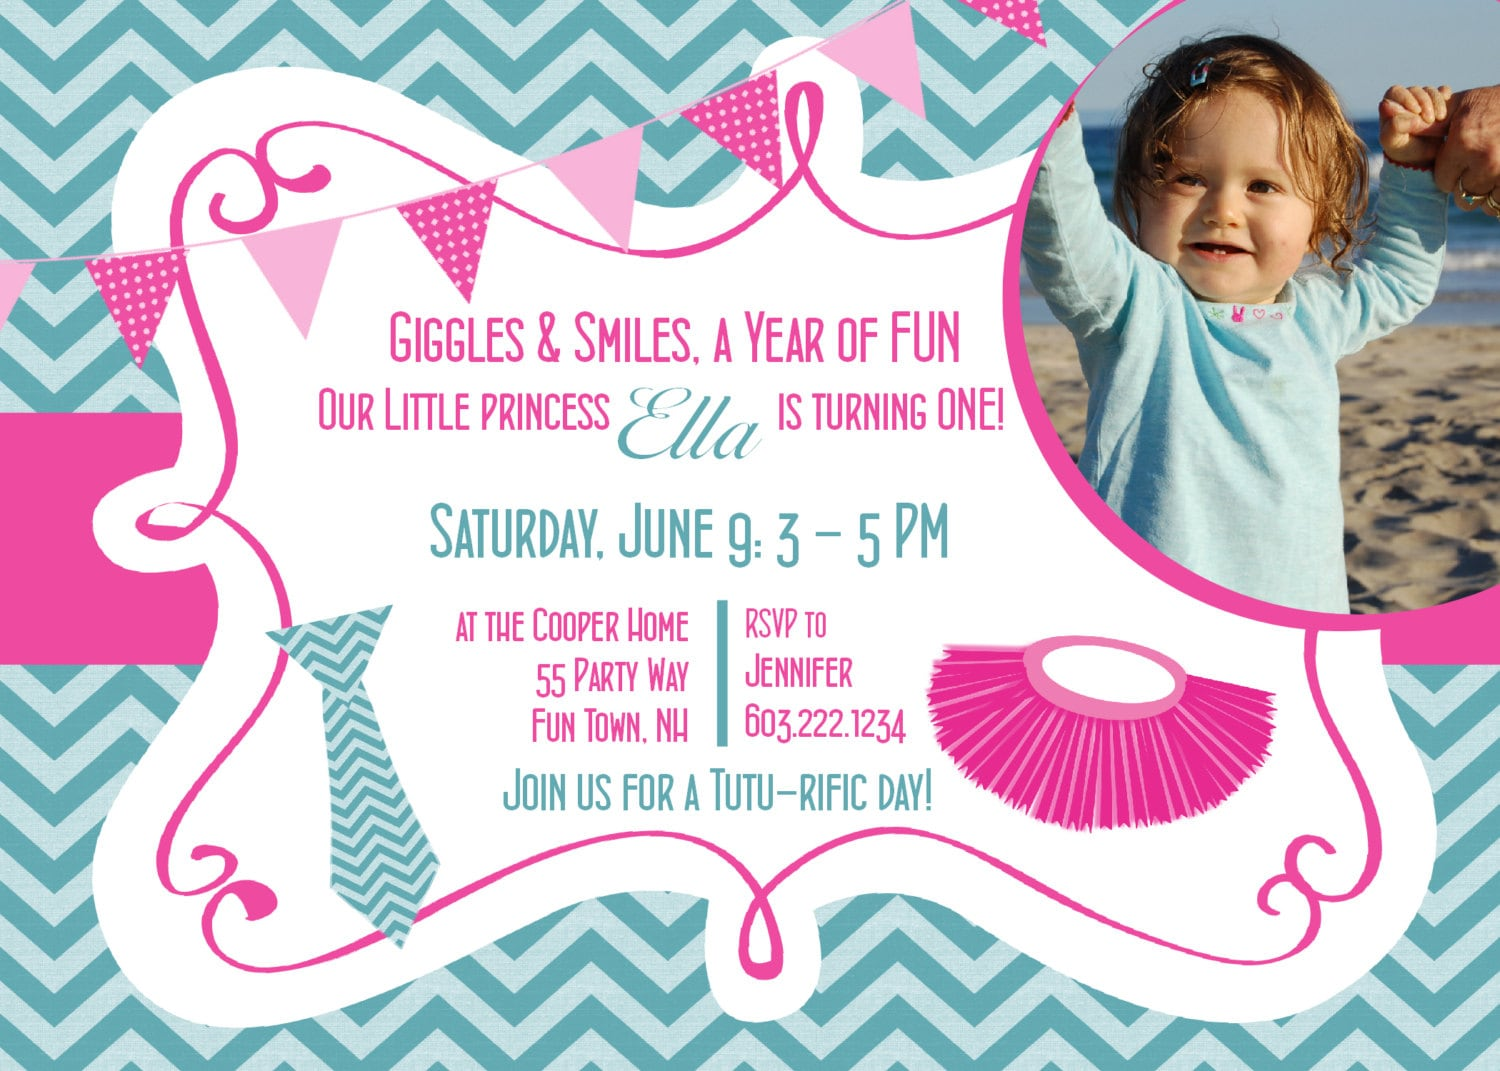 Tutu birthday invitation first birthday tutu party invitation tutu birthday invitation first birthday tutu party invitation 1st birthday tutu and tie invitations girl tutu chevron photo card any age filmwisefo Image collections